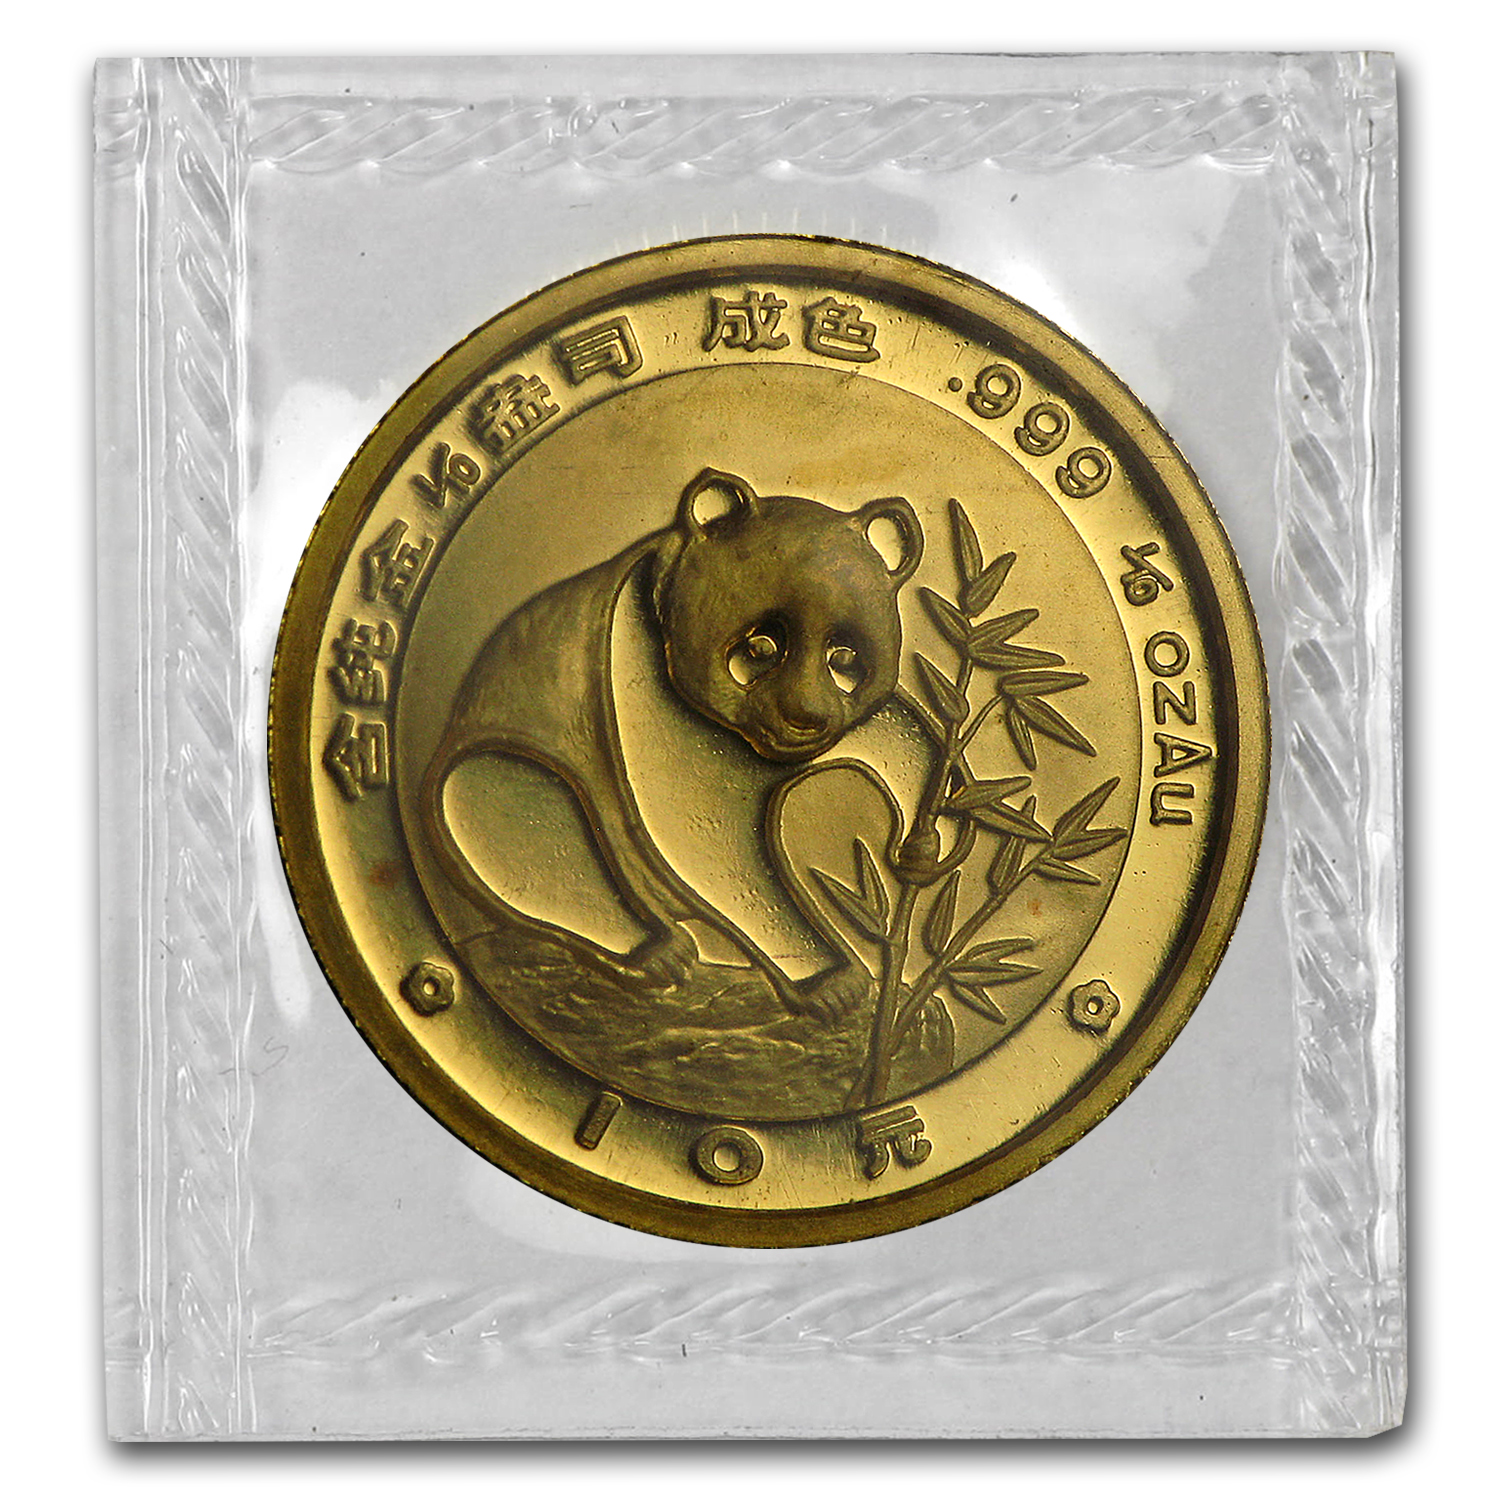 1988 1/10 oz Gold Chinese Panda BU (Sealed)